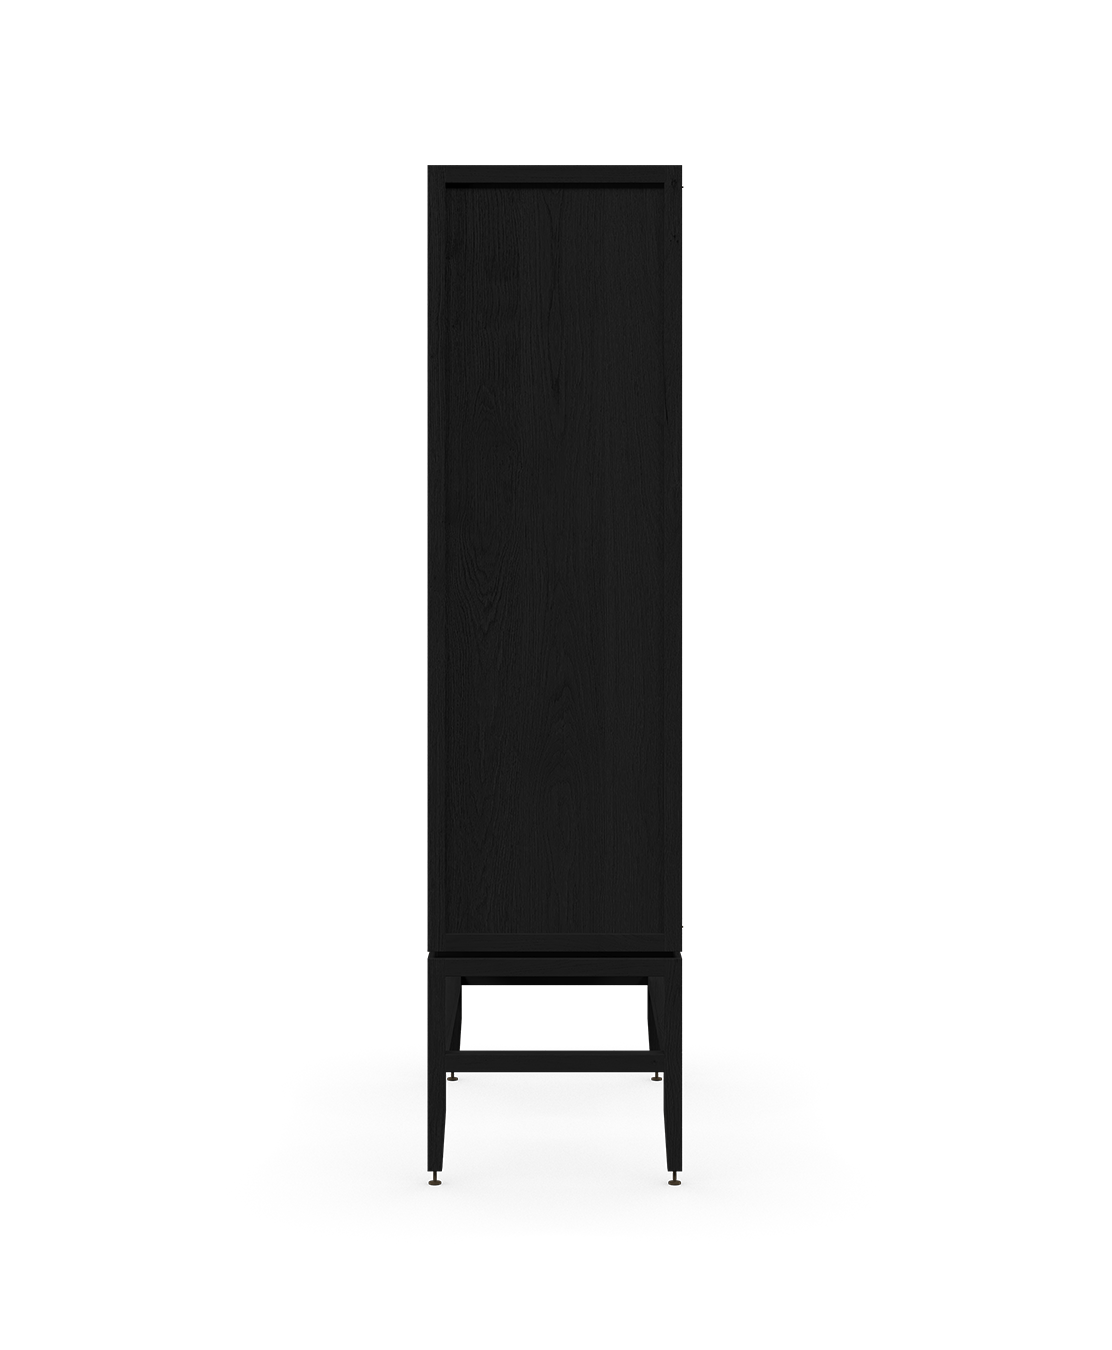 coquo volitare midnight black stained oak solid wood modular 2 glass doors storage glass display hutch cabinet 33 inch C2-D-3318-1201-BK